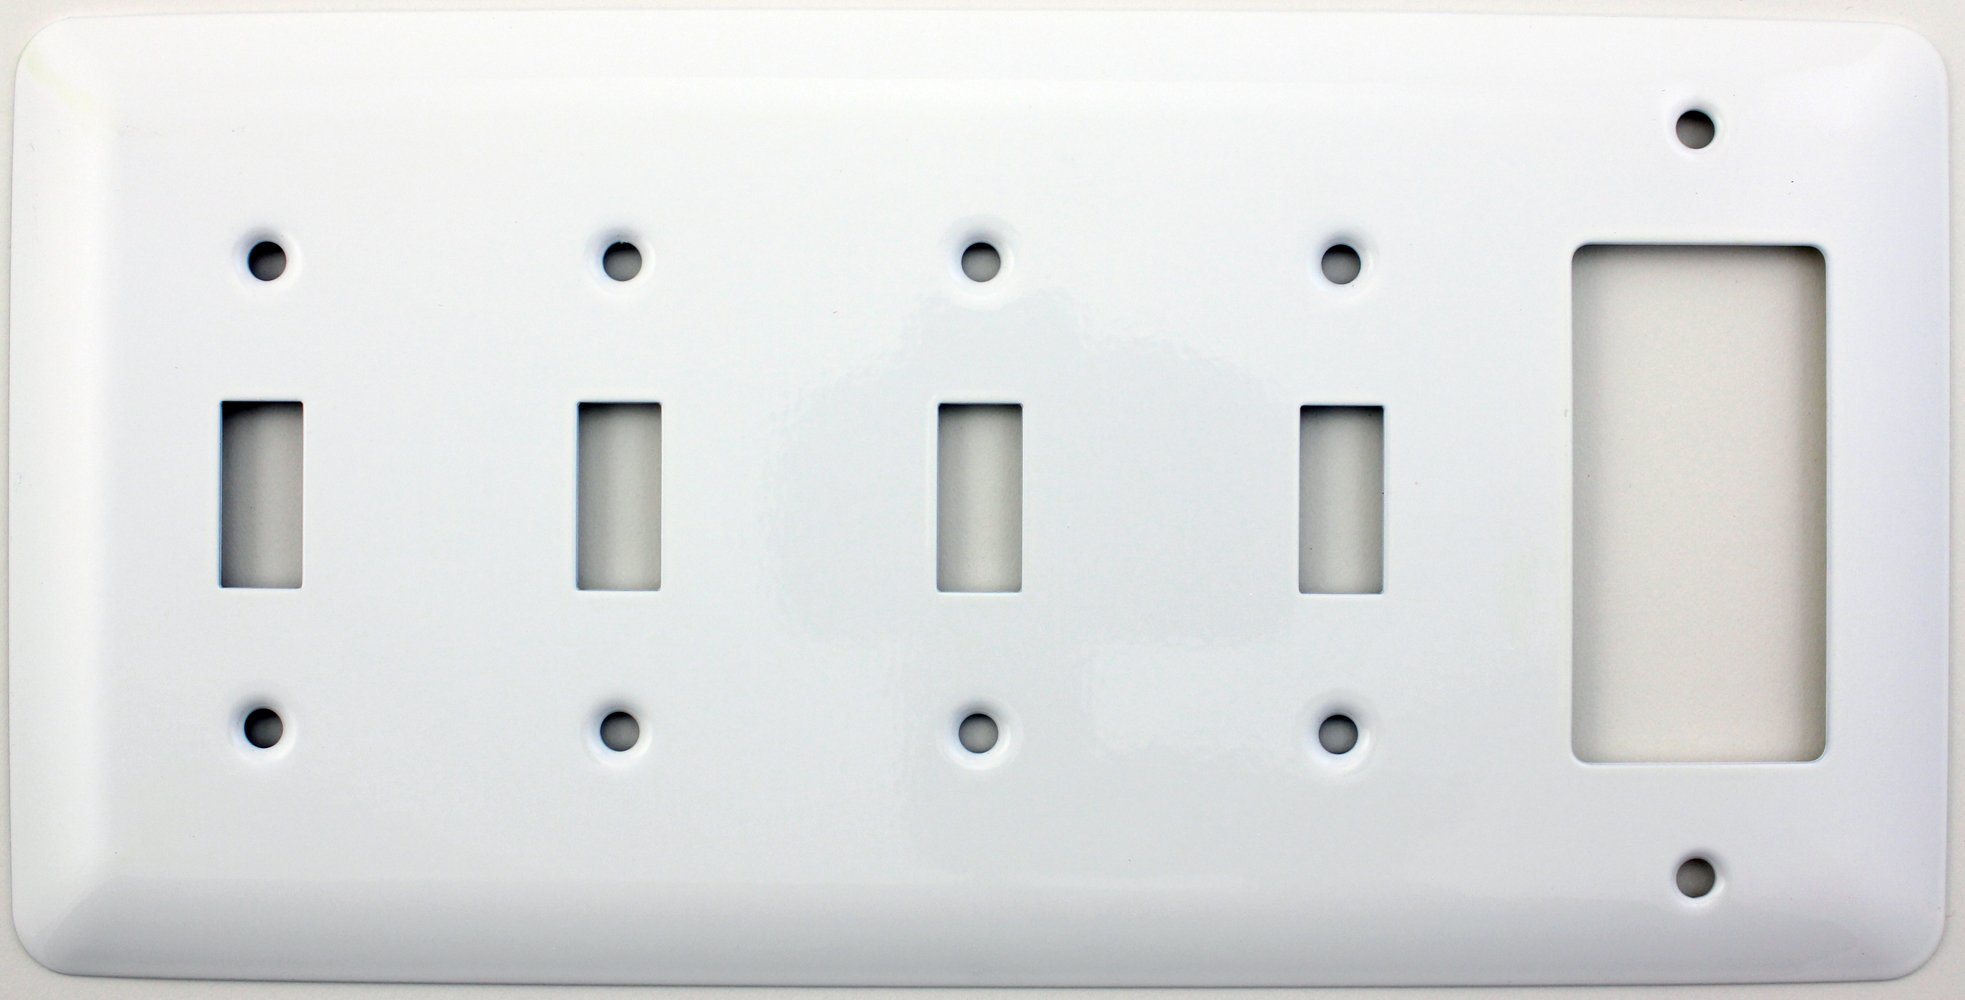 Mulberry Princess Style White 5 Gang Combination Switch Plate - 4 Toggle Light Switch Openings 1 GFI/Rocker Opening